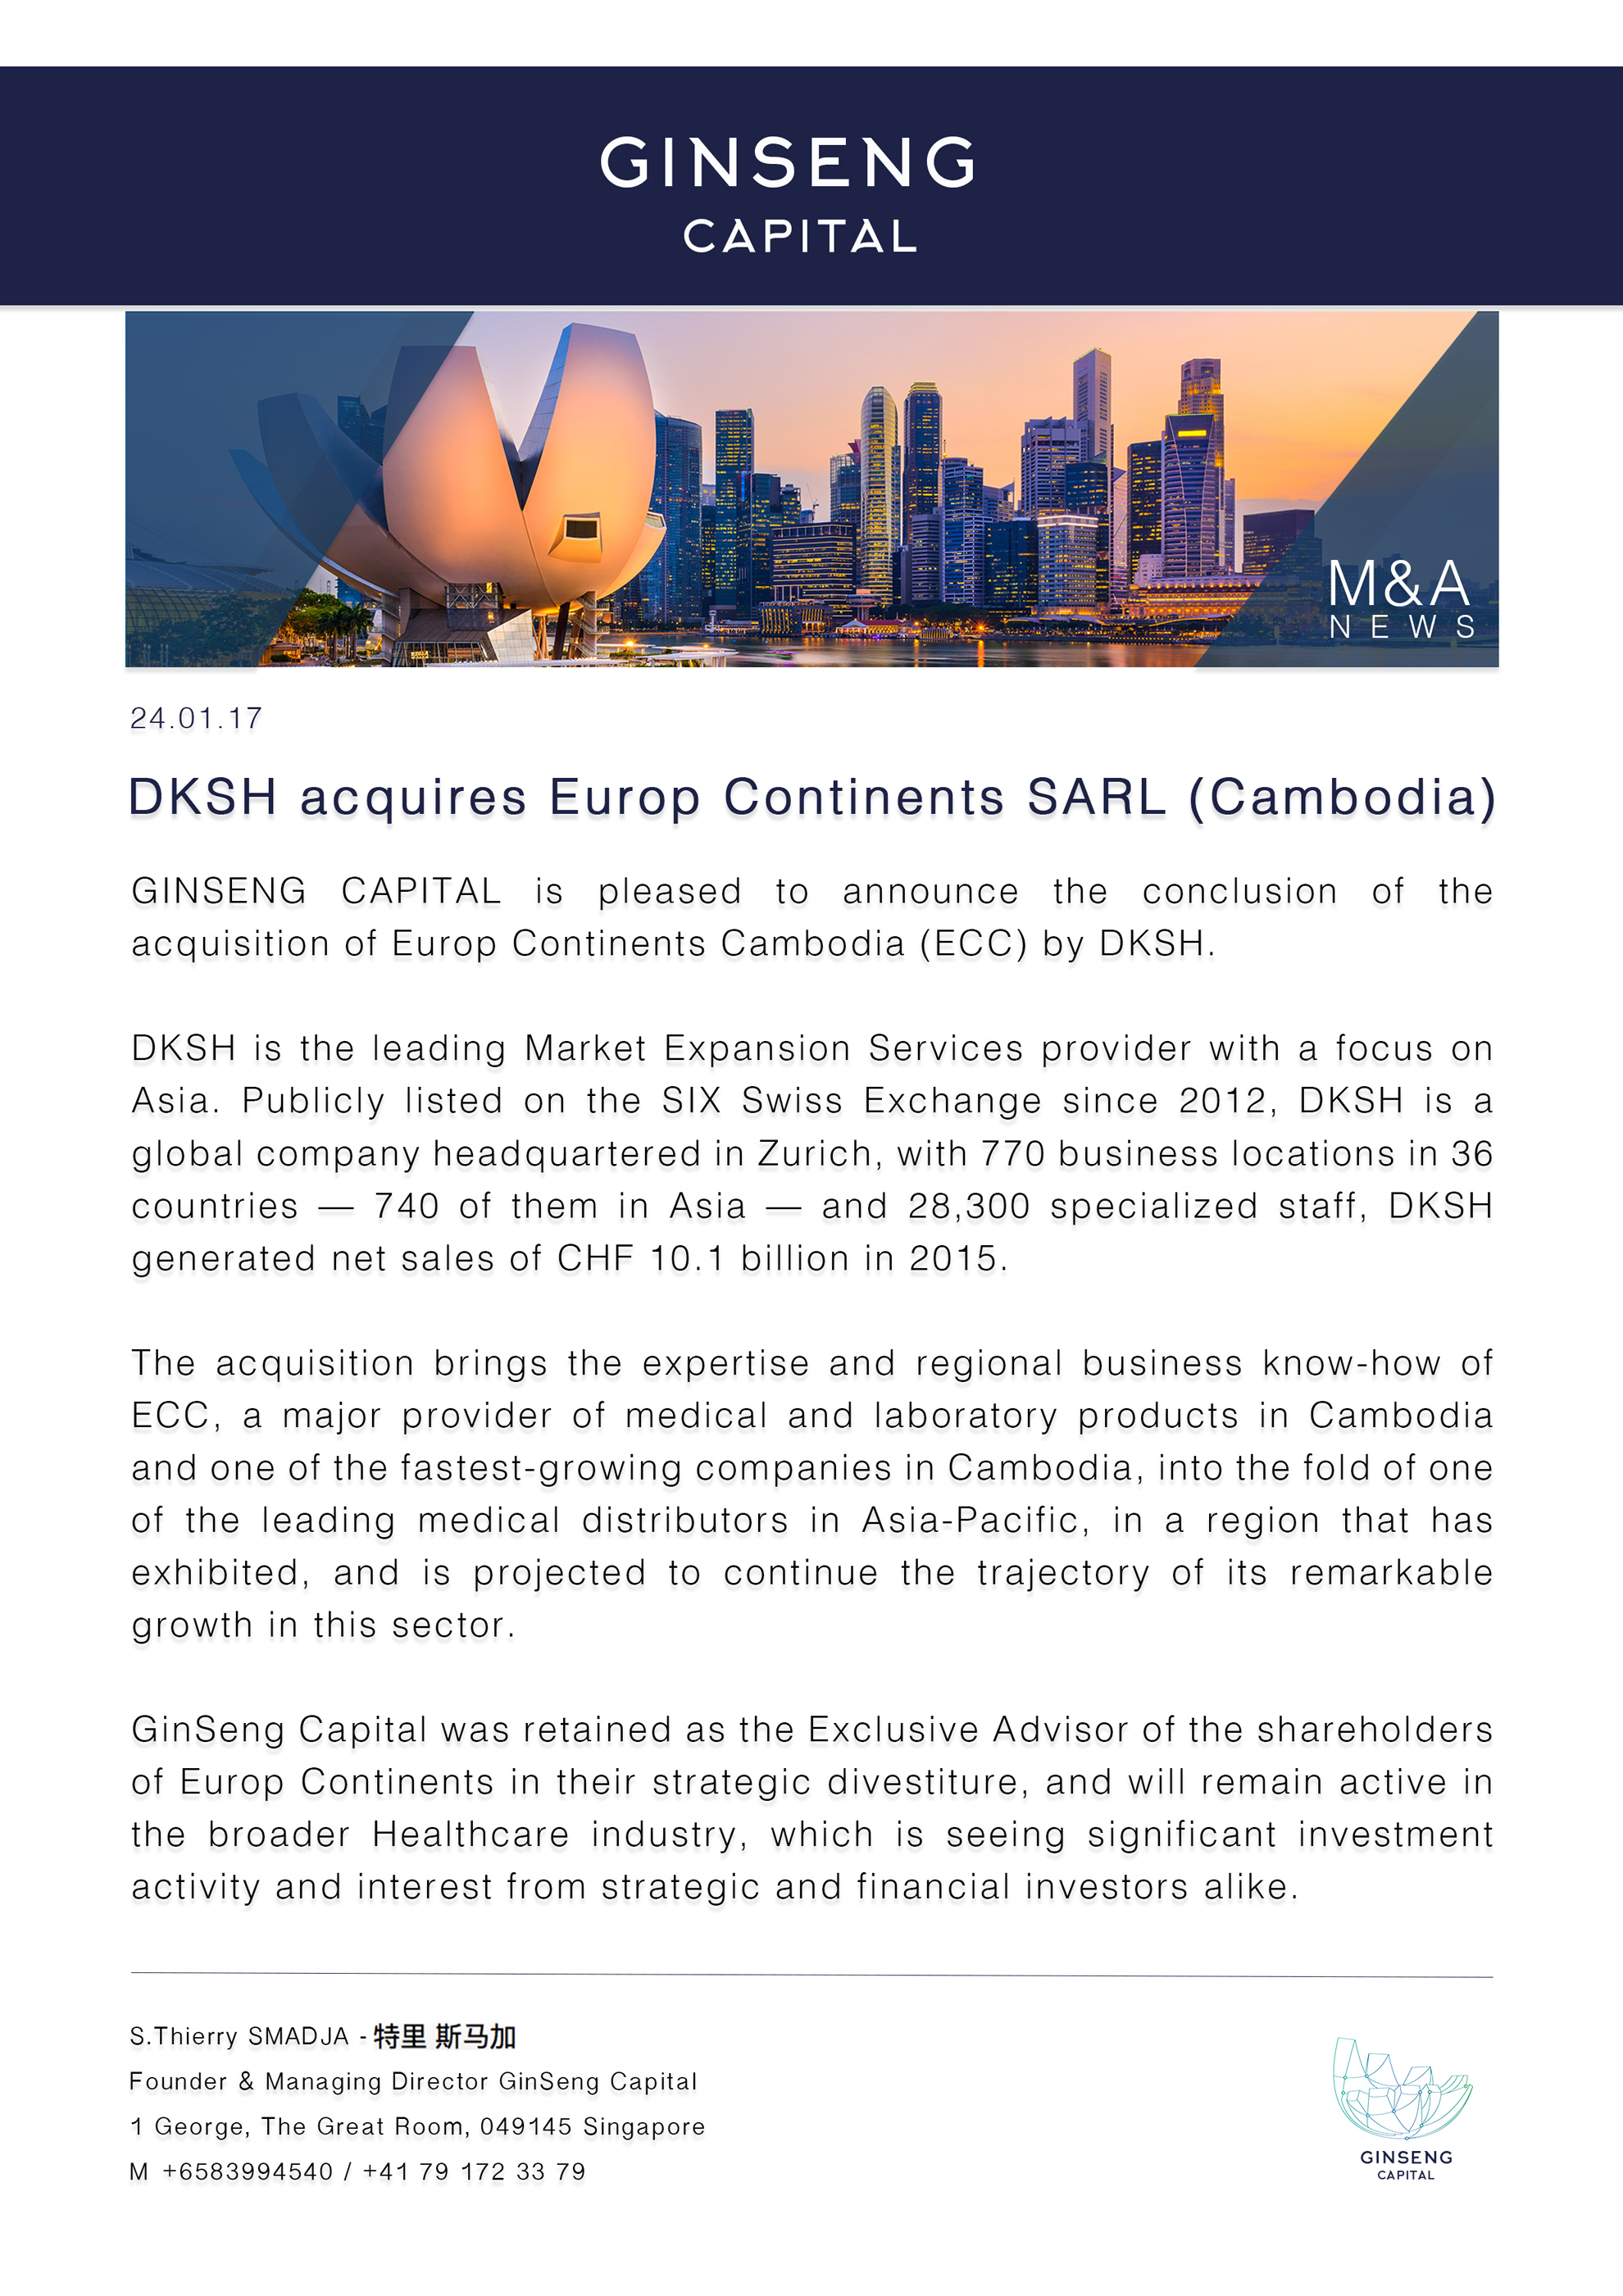 DKSH acquires Europ Continents SARL